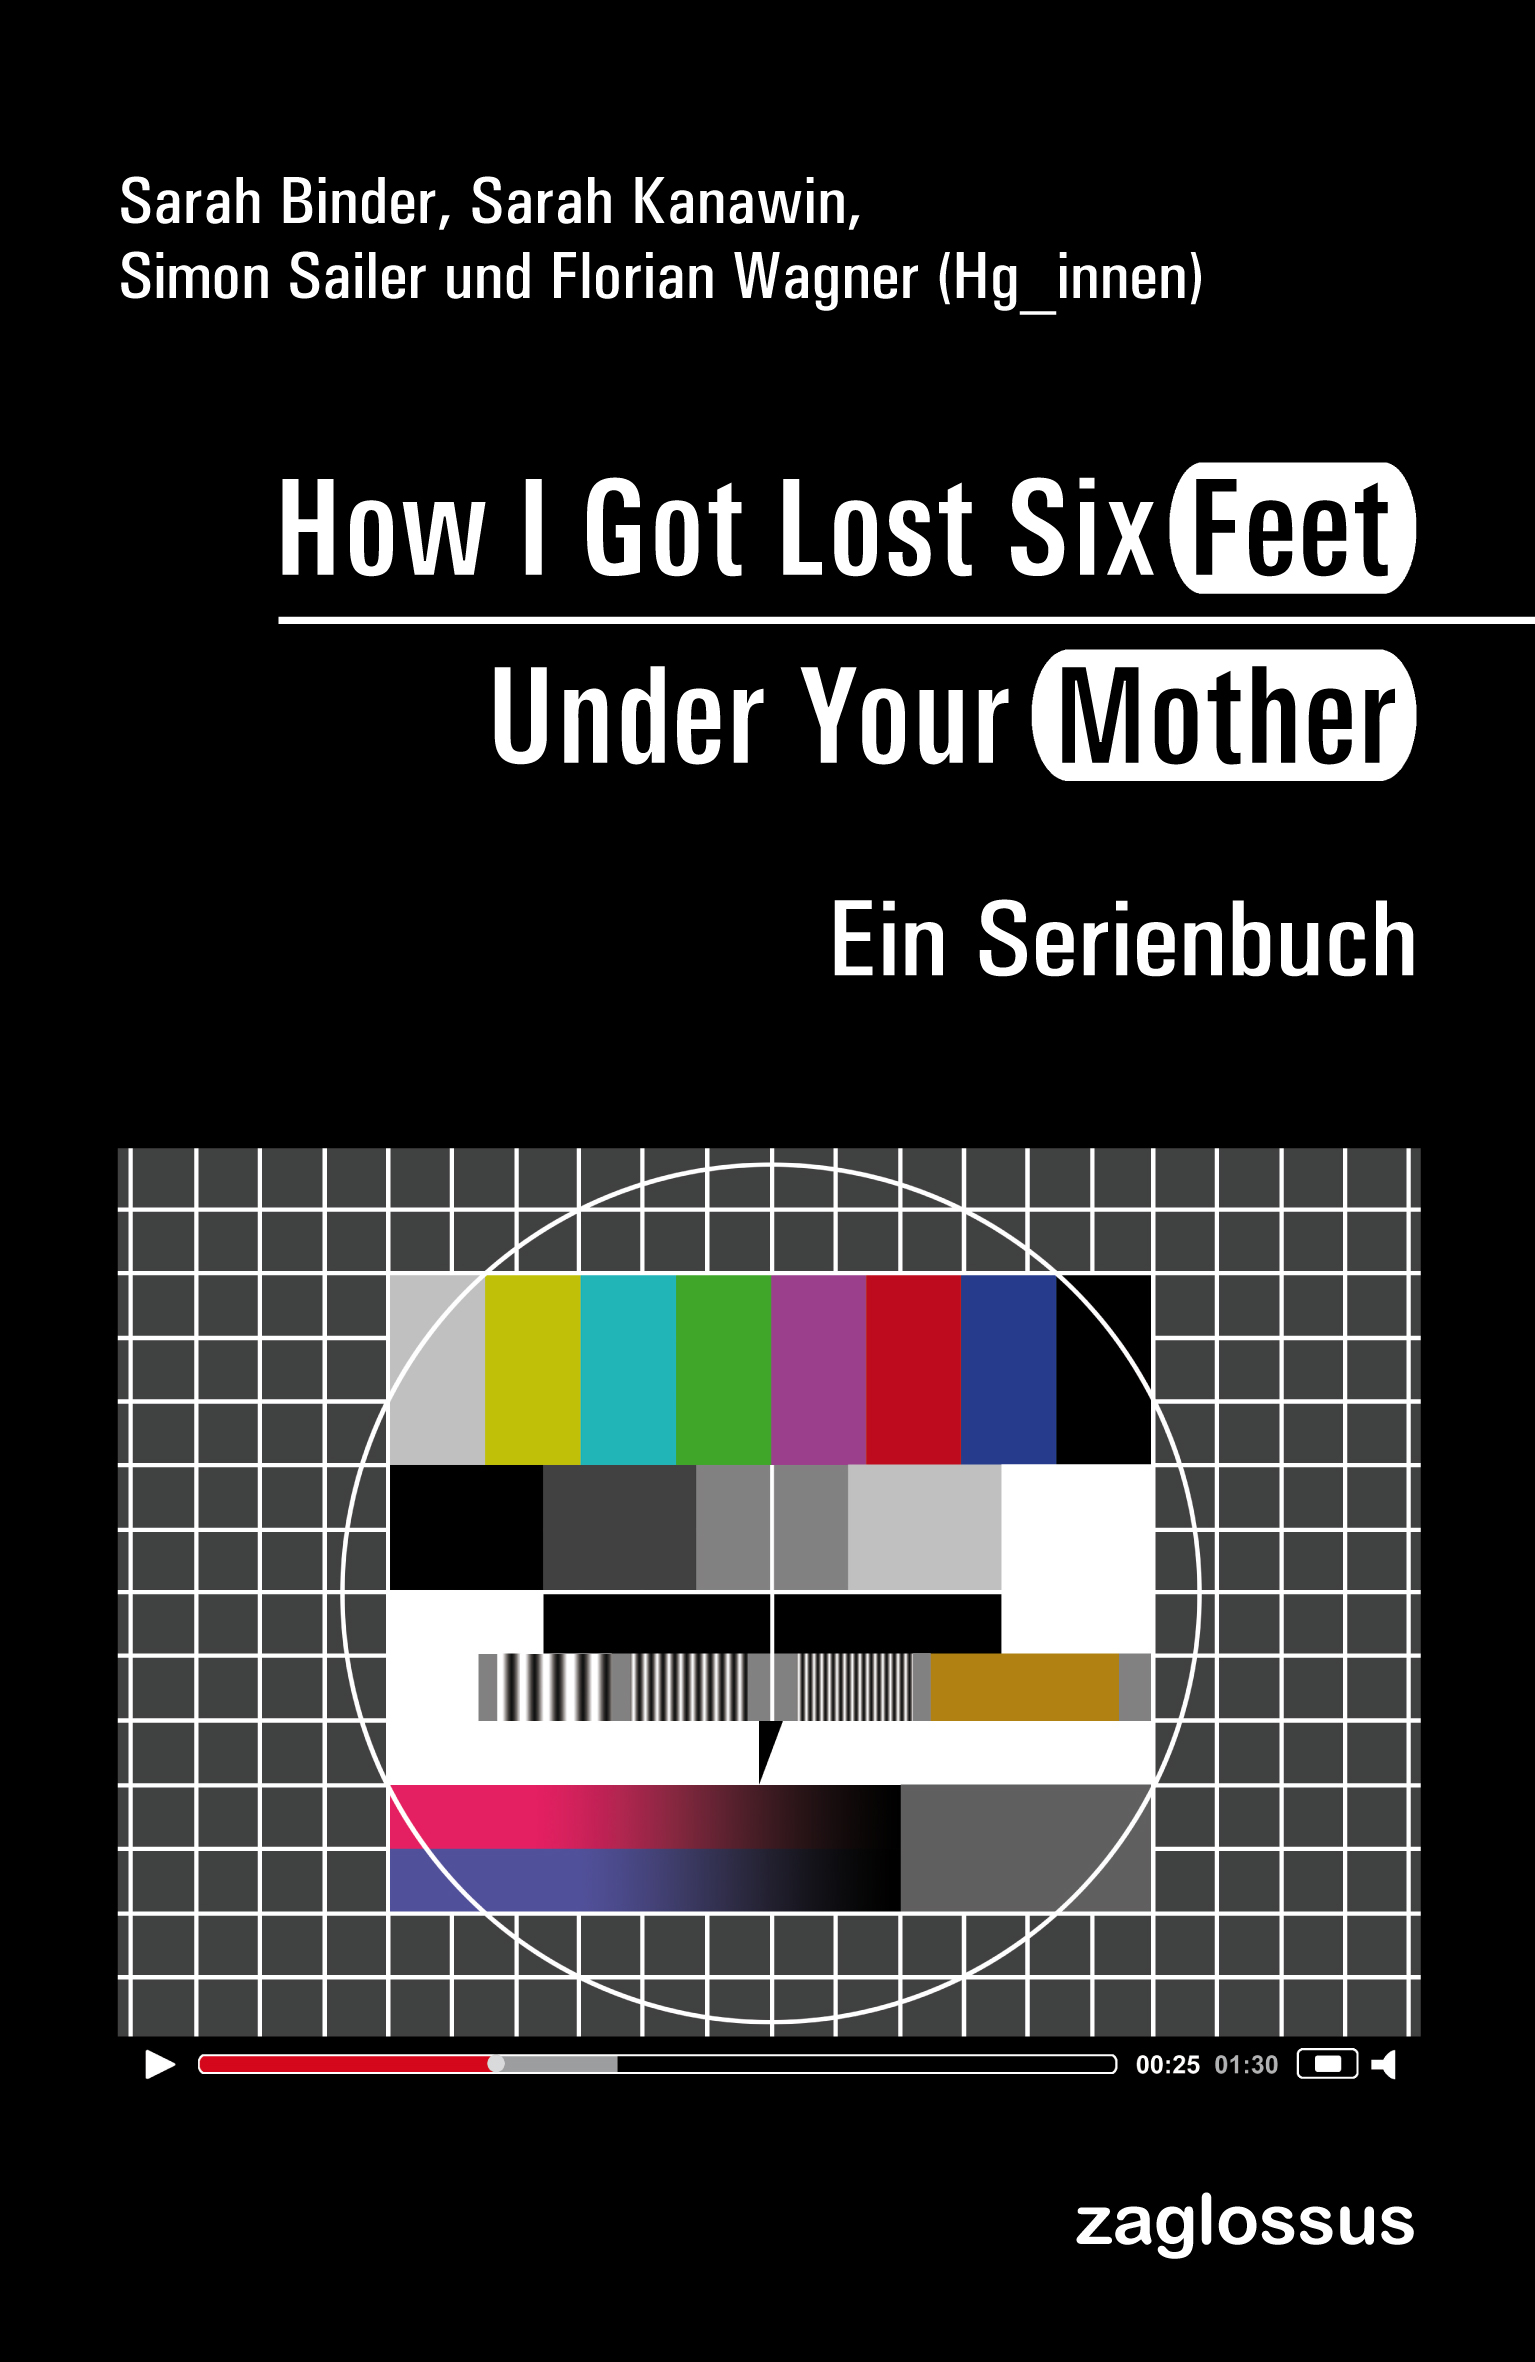 How I Got Lost Six Feet Under Your Mother Sarah Binder